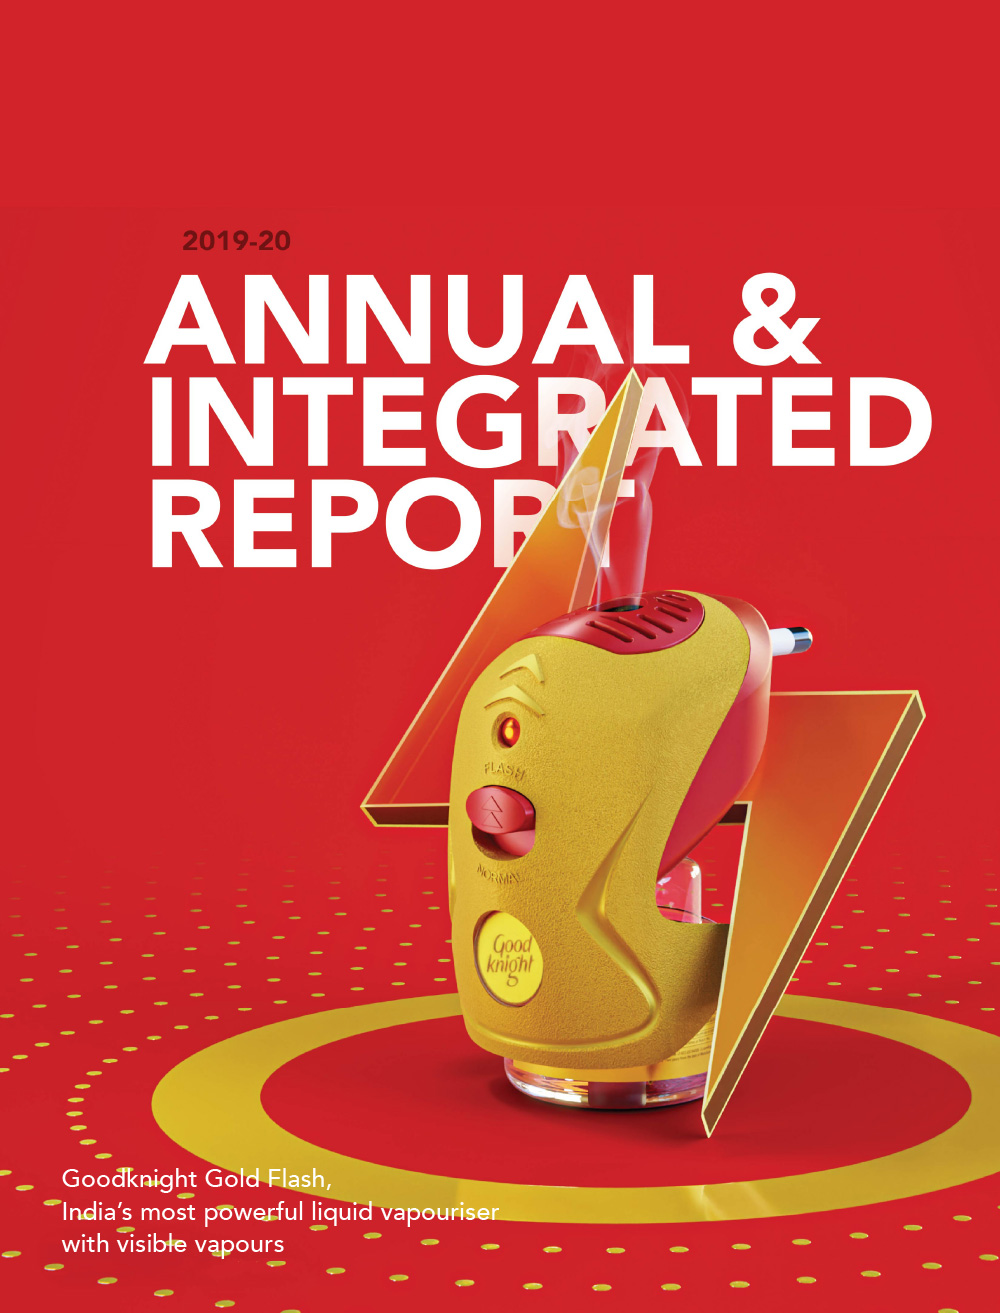 Annual & Integrated Report 2019-20